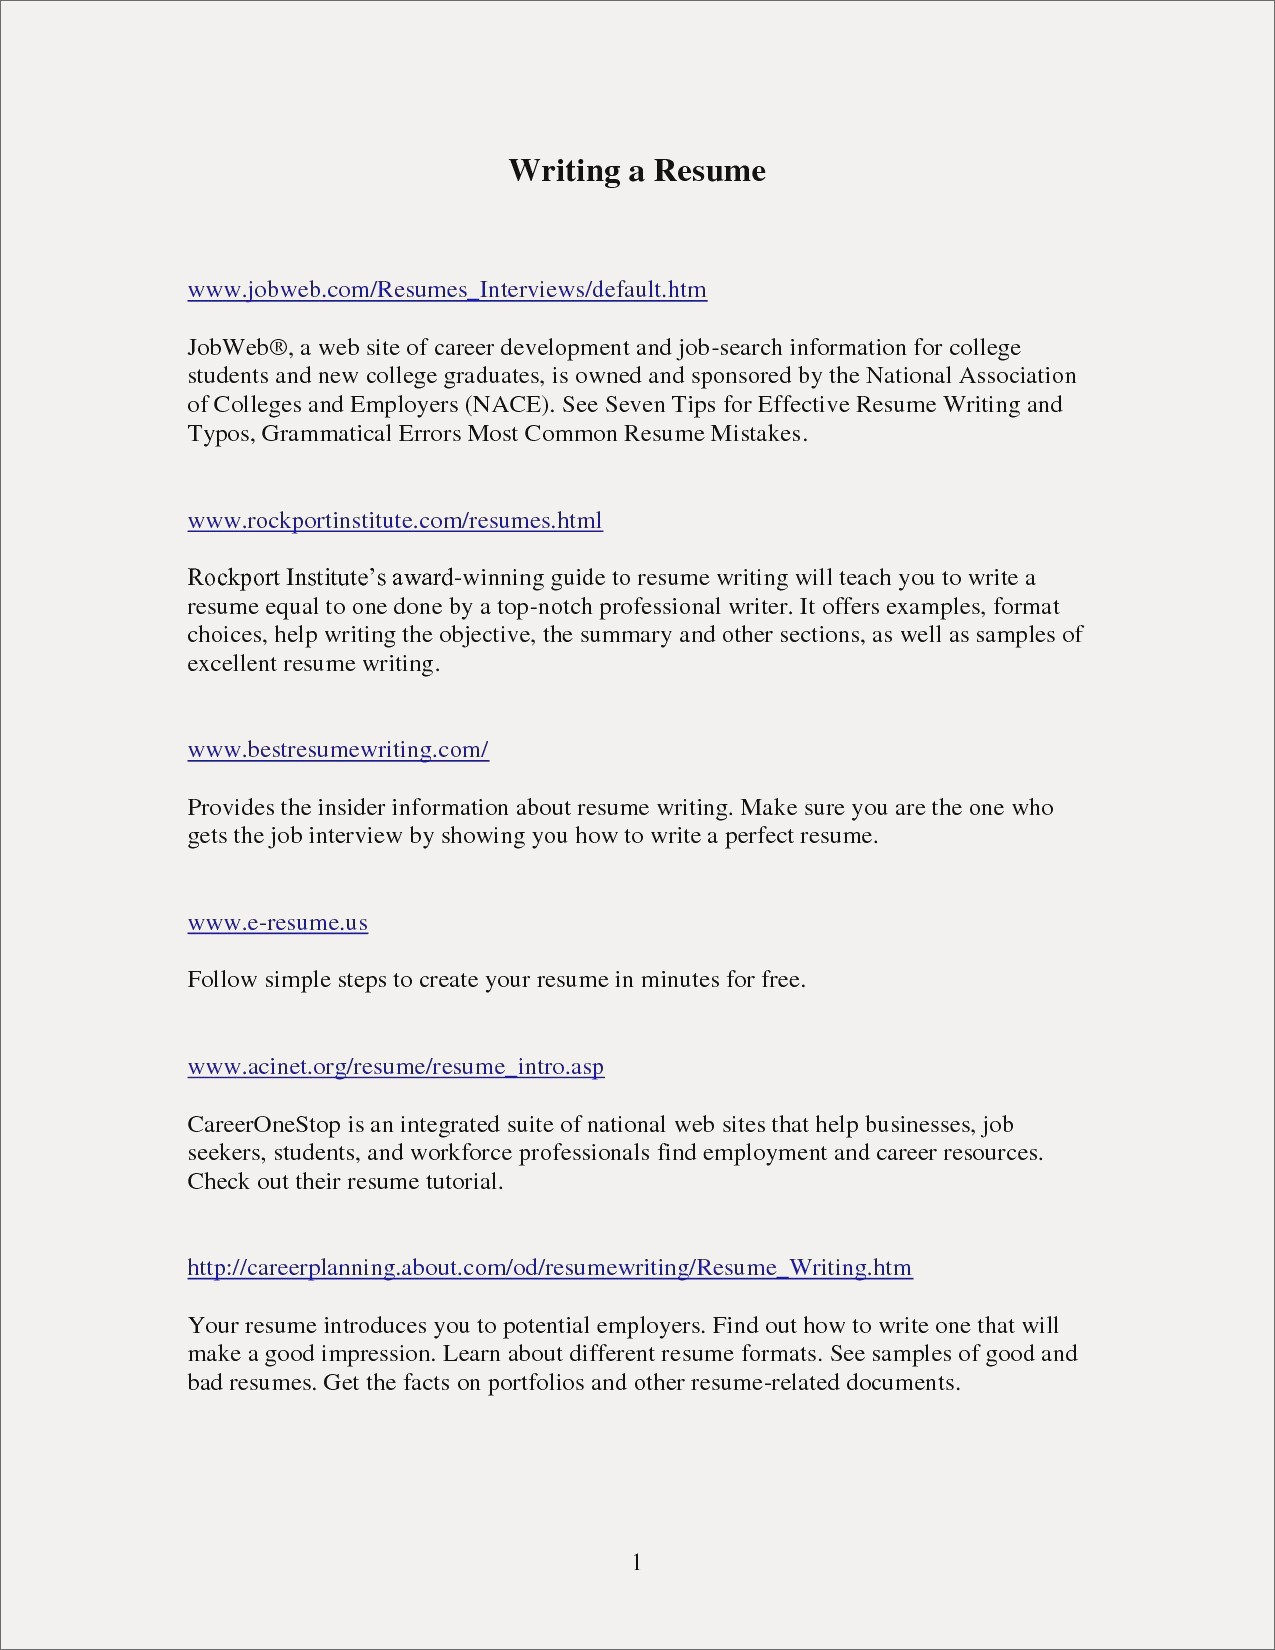 effective resume example-How To Write An Effective Resume Examples Refrence Sample Entry Level Resume New Entry Level Resume Sorority Resume 0d 11-d